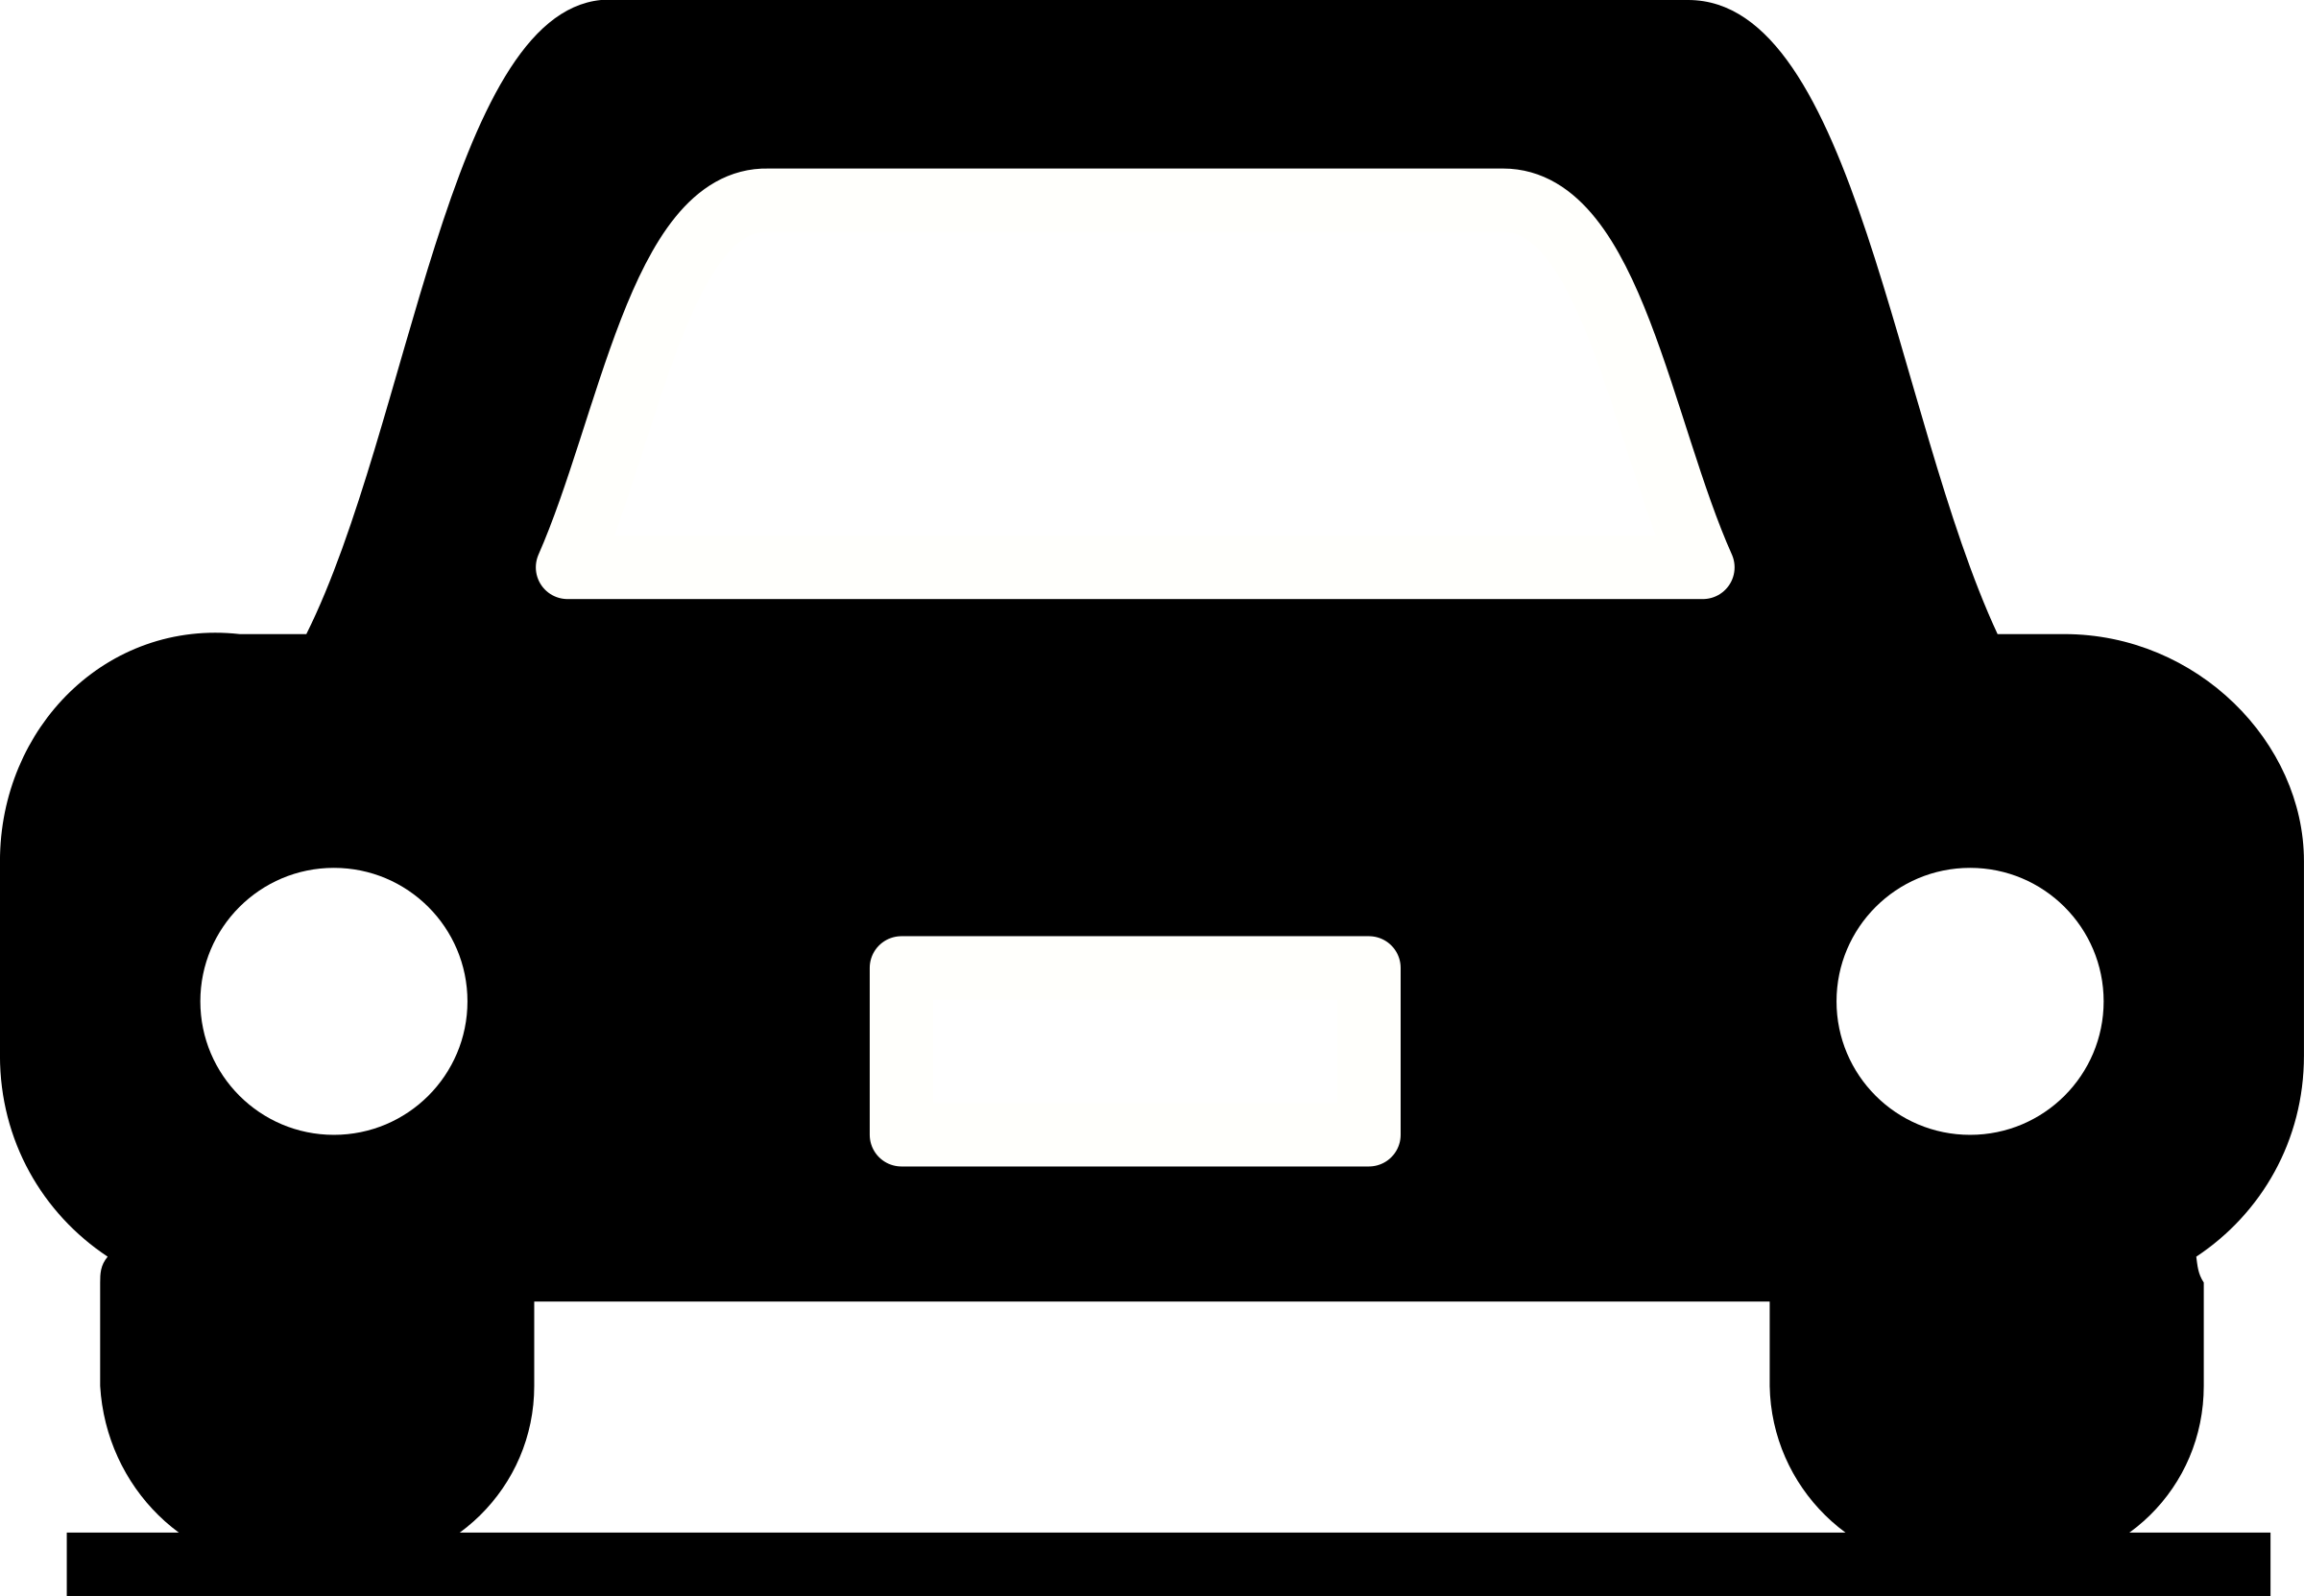 Car Pictogram by libberry